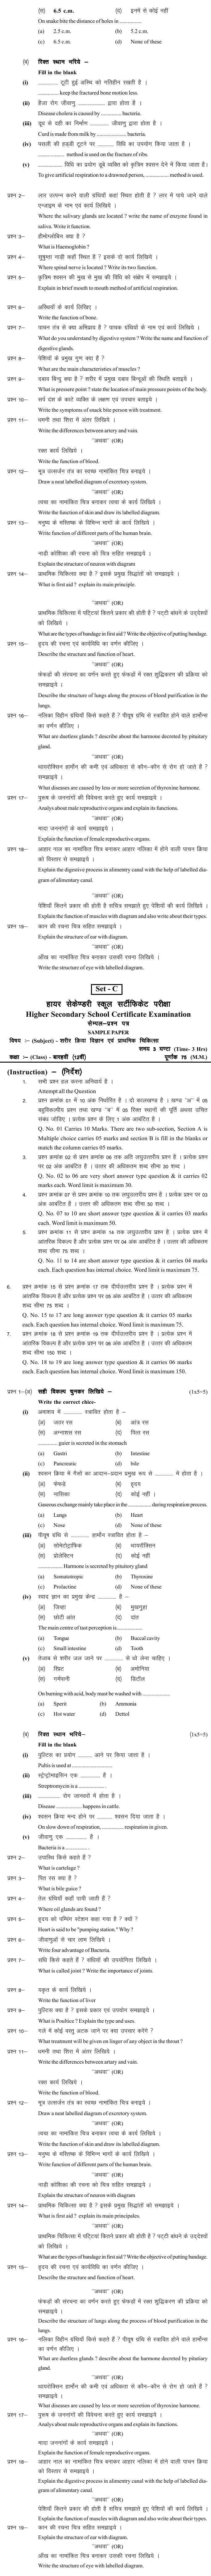 Chattisgarh Board Class 12 Physical education and First Aid Sample Paper